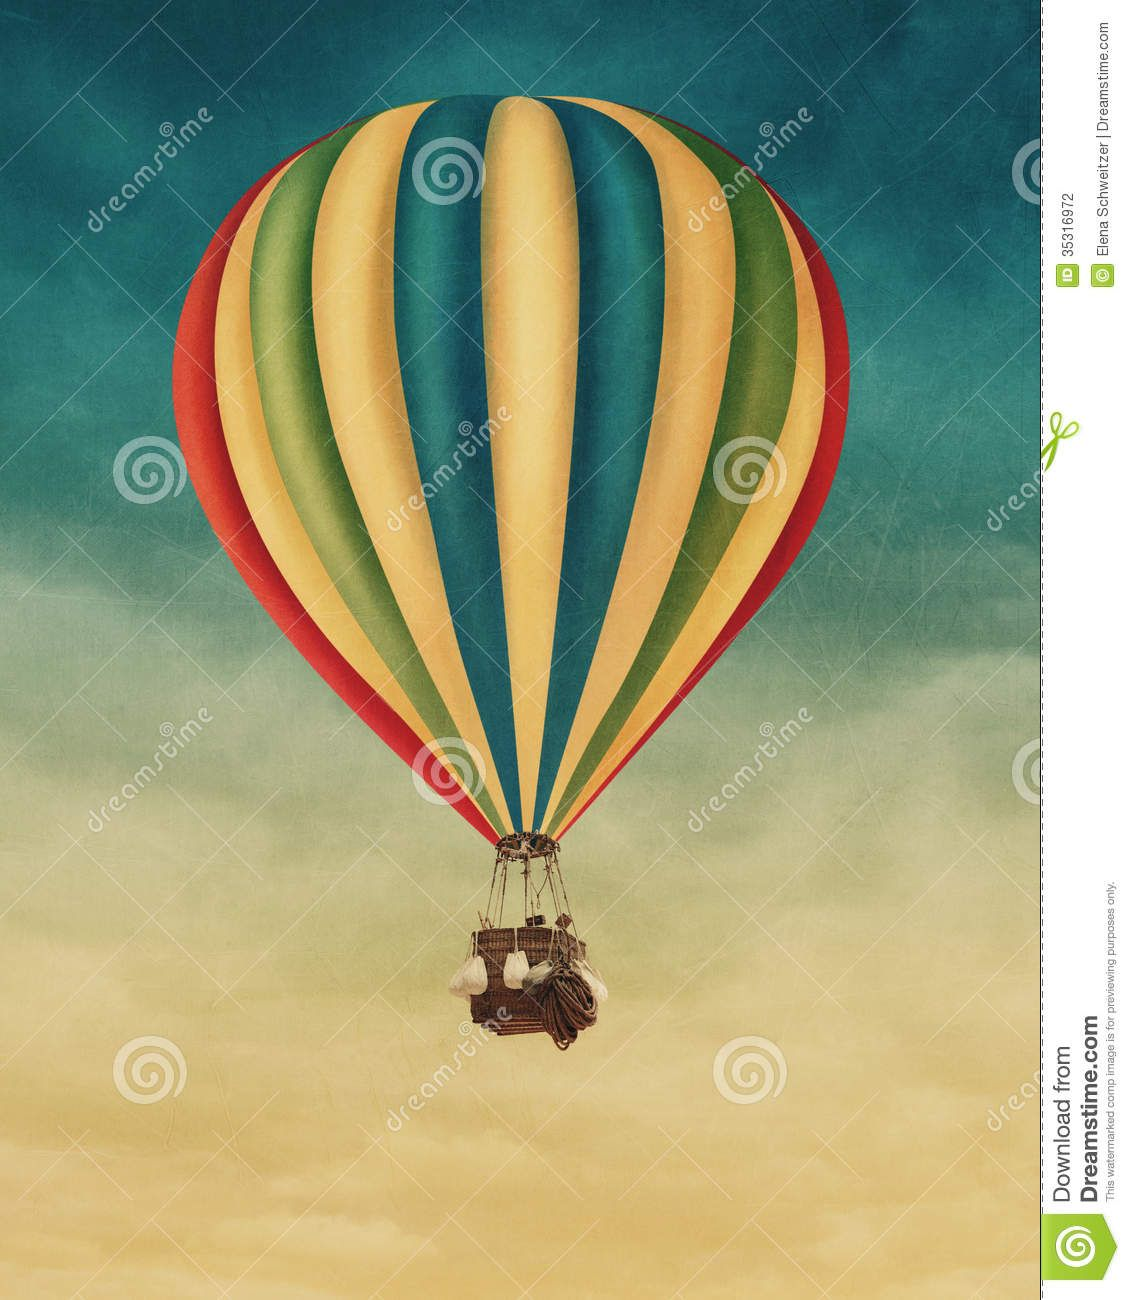 13 Best Photos of Vintage Hot Air Balloon Wallpaper - Hot ...